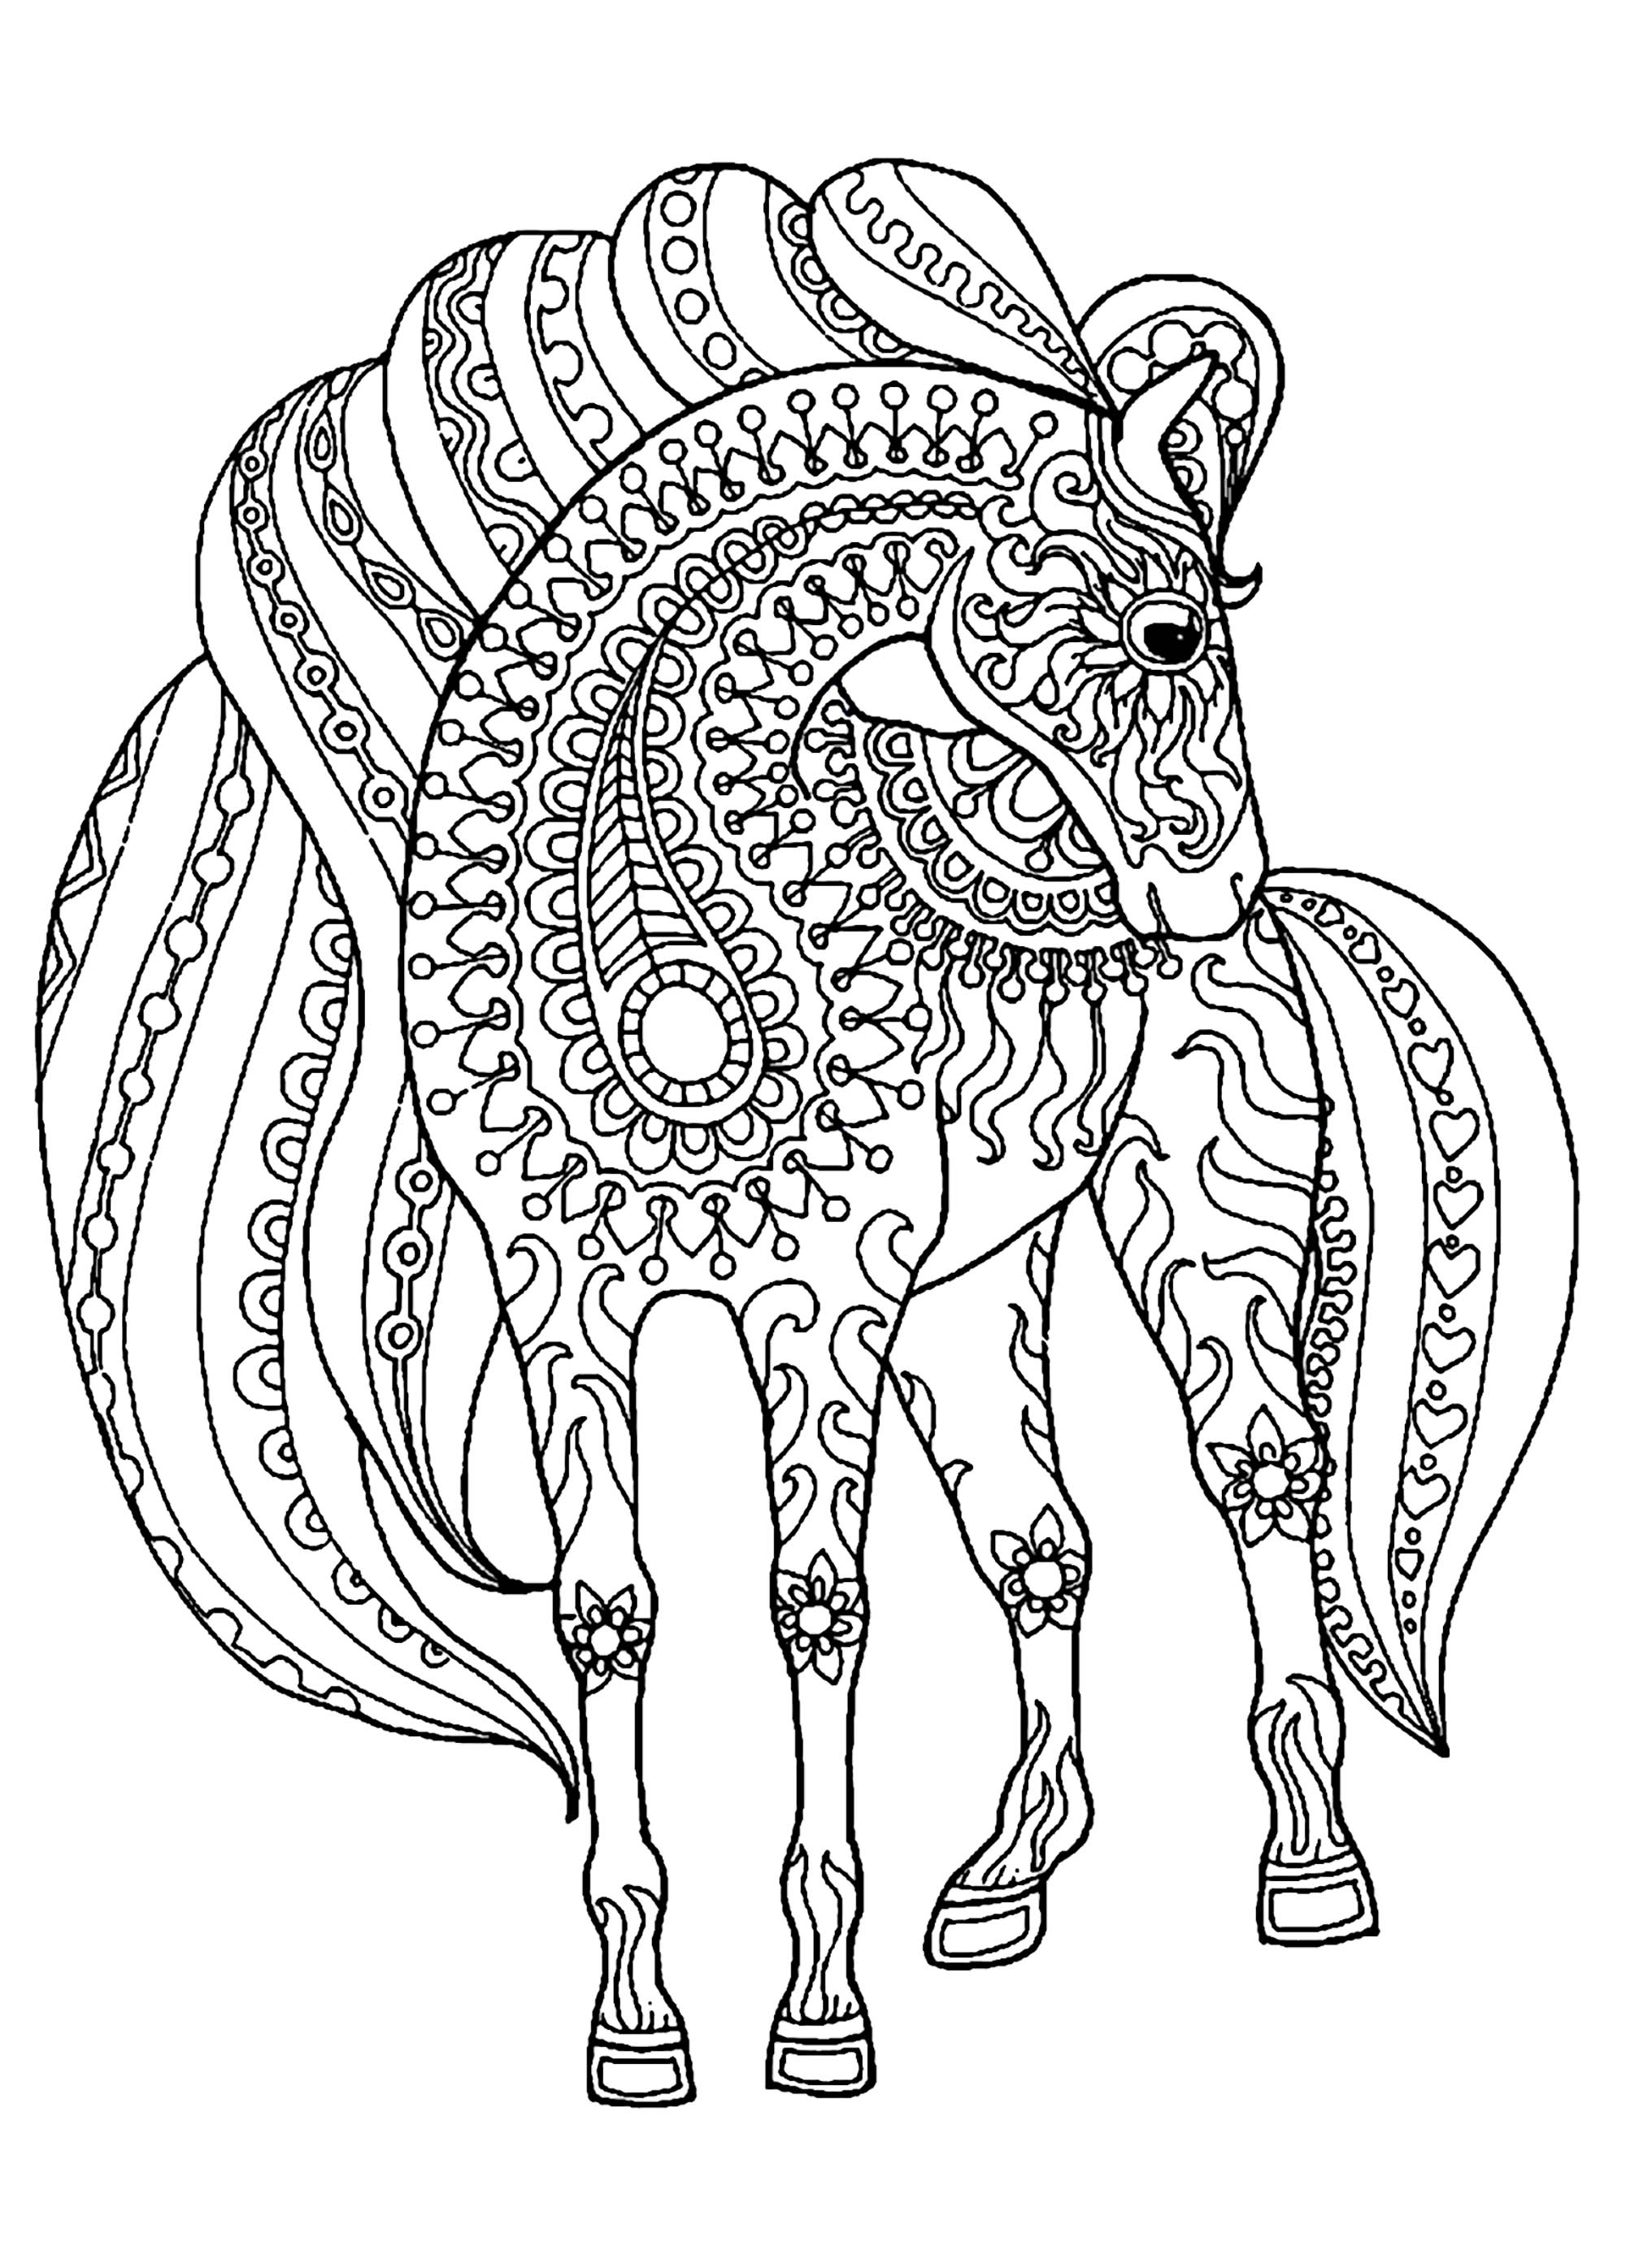 horse adult coloring pages Horse simple zentangle patterns   Horses Adult Coloring Pages horse adult coloring pages